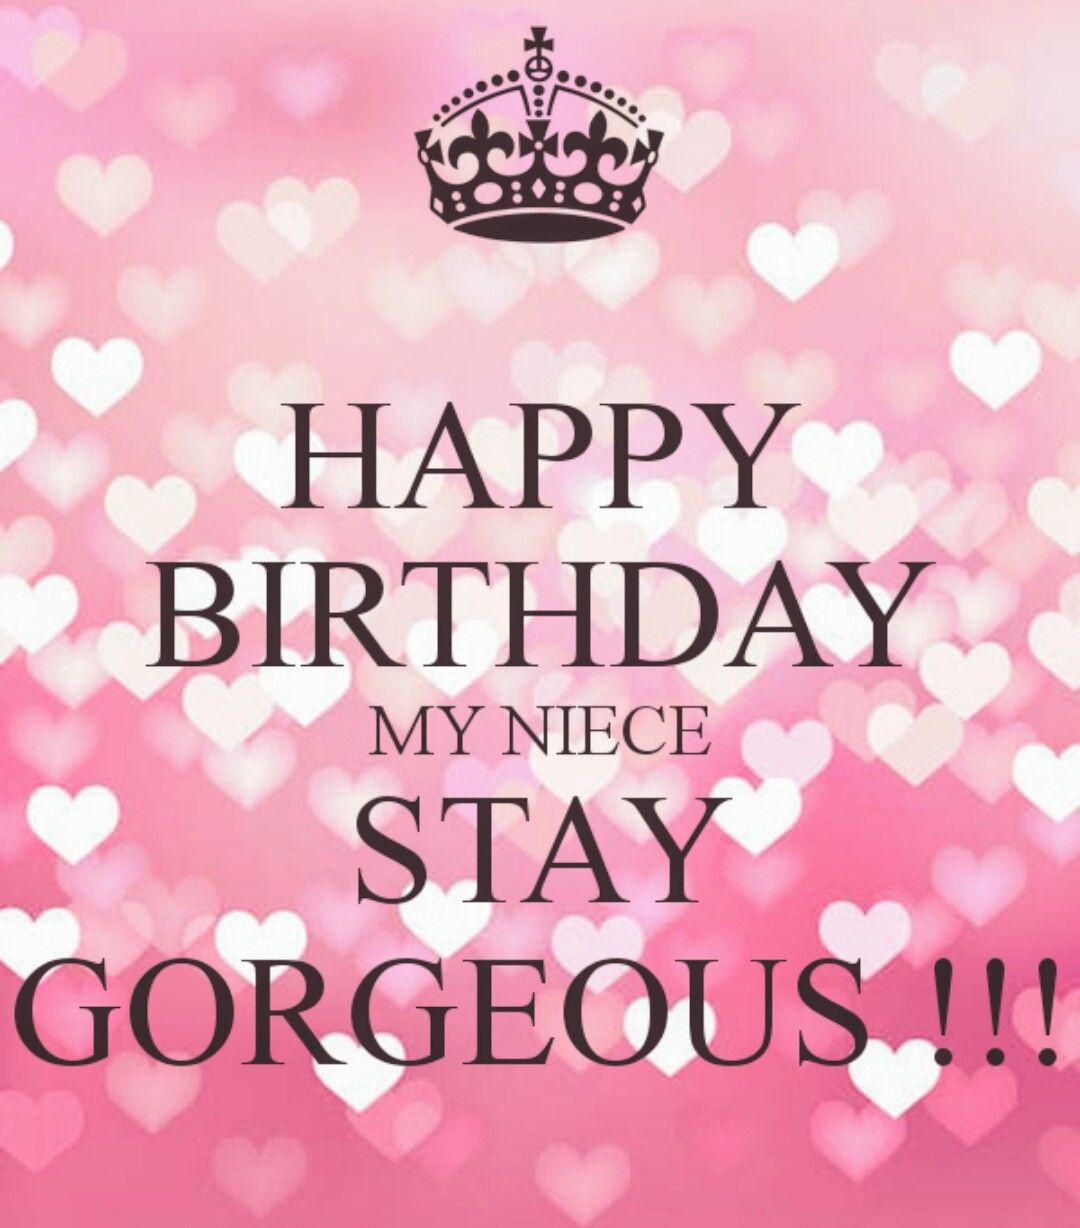 Happy Birthday Images And Quotes: HAPPY BIRTHDAY MY NEICE, STAY GORGEOUS! ☆♡